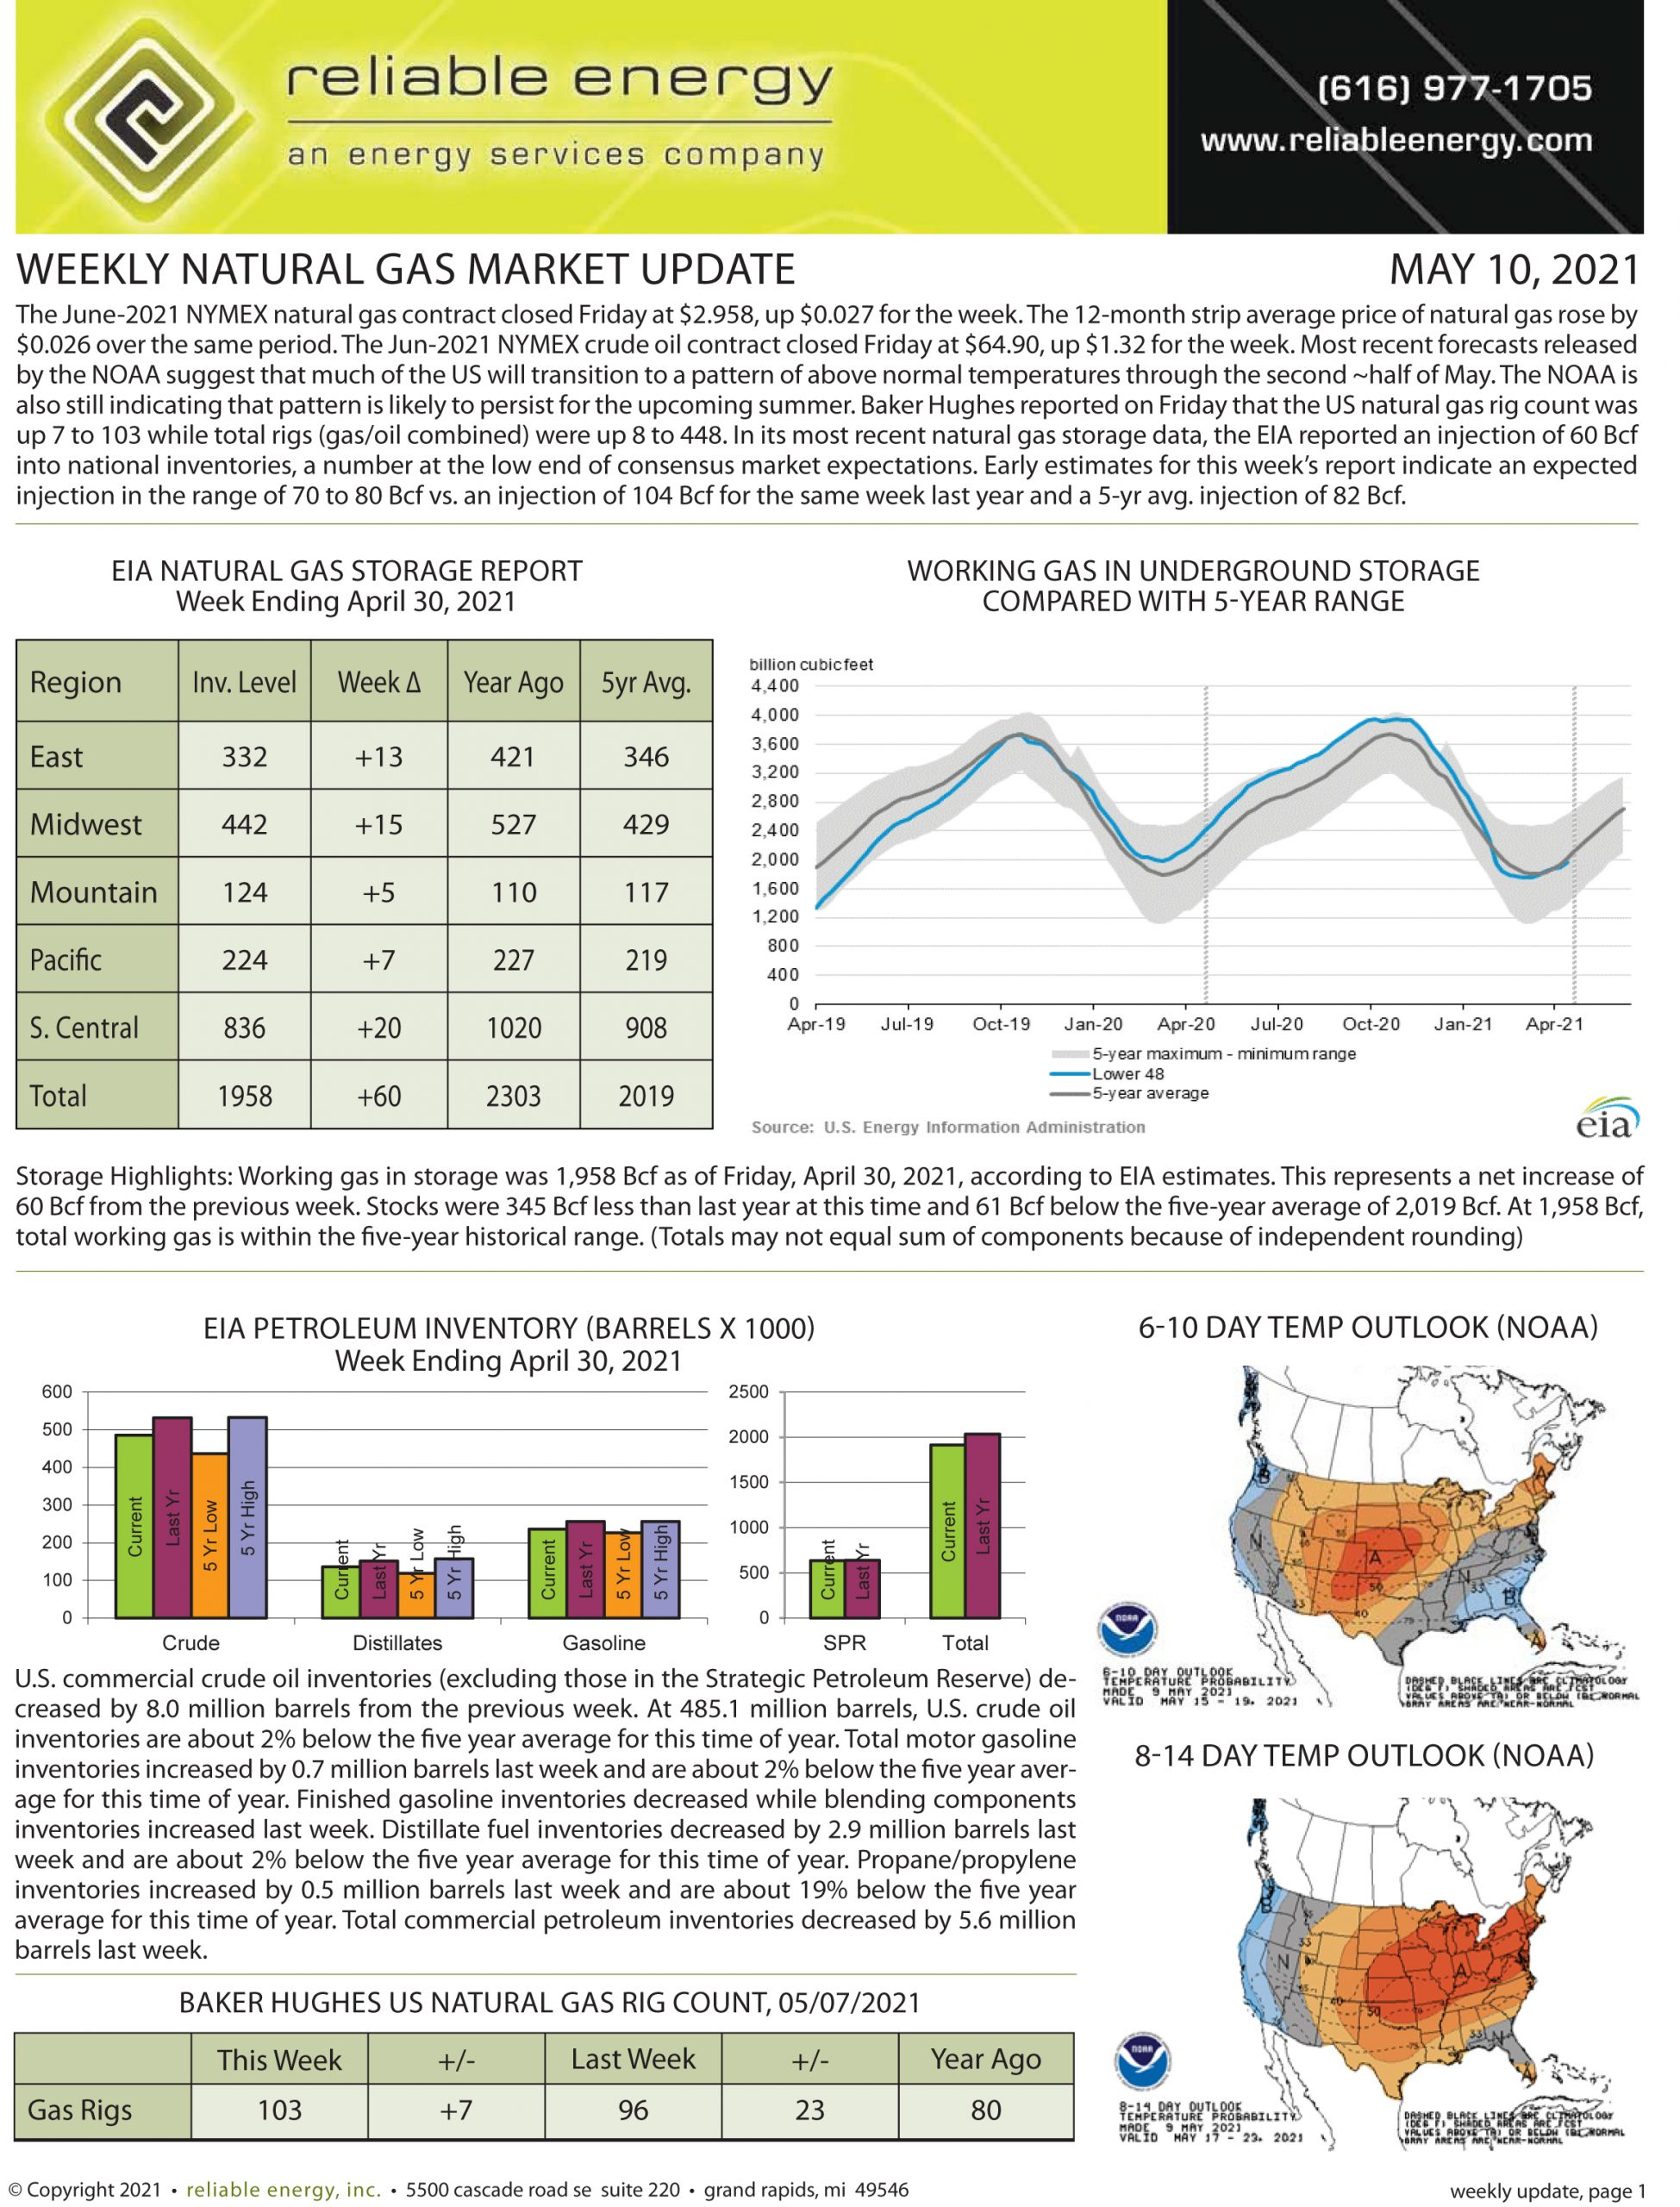 Natural Gas Market Update – May 10, 2021